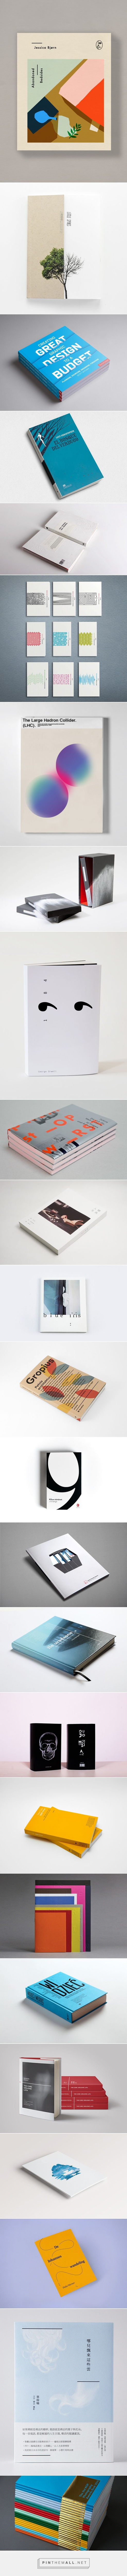 25 Inspiring Book Cover Designs